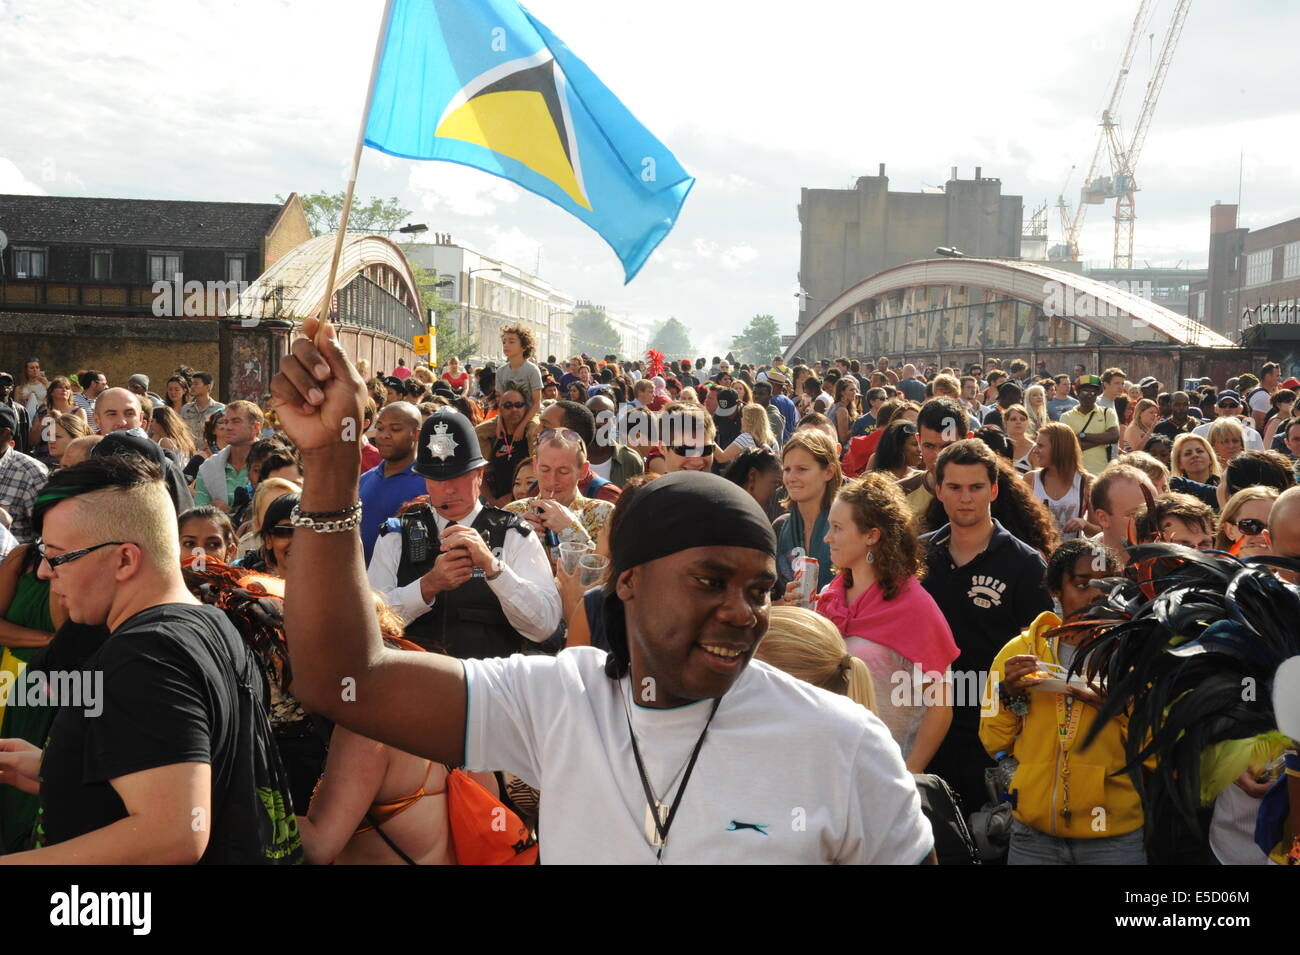 Notting Hill Carnival crowds - Stock Image